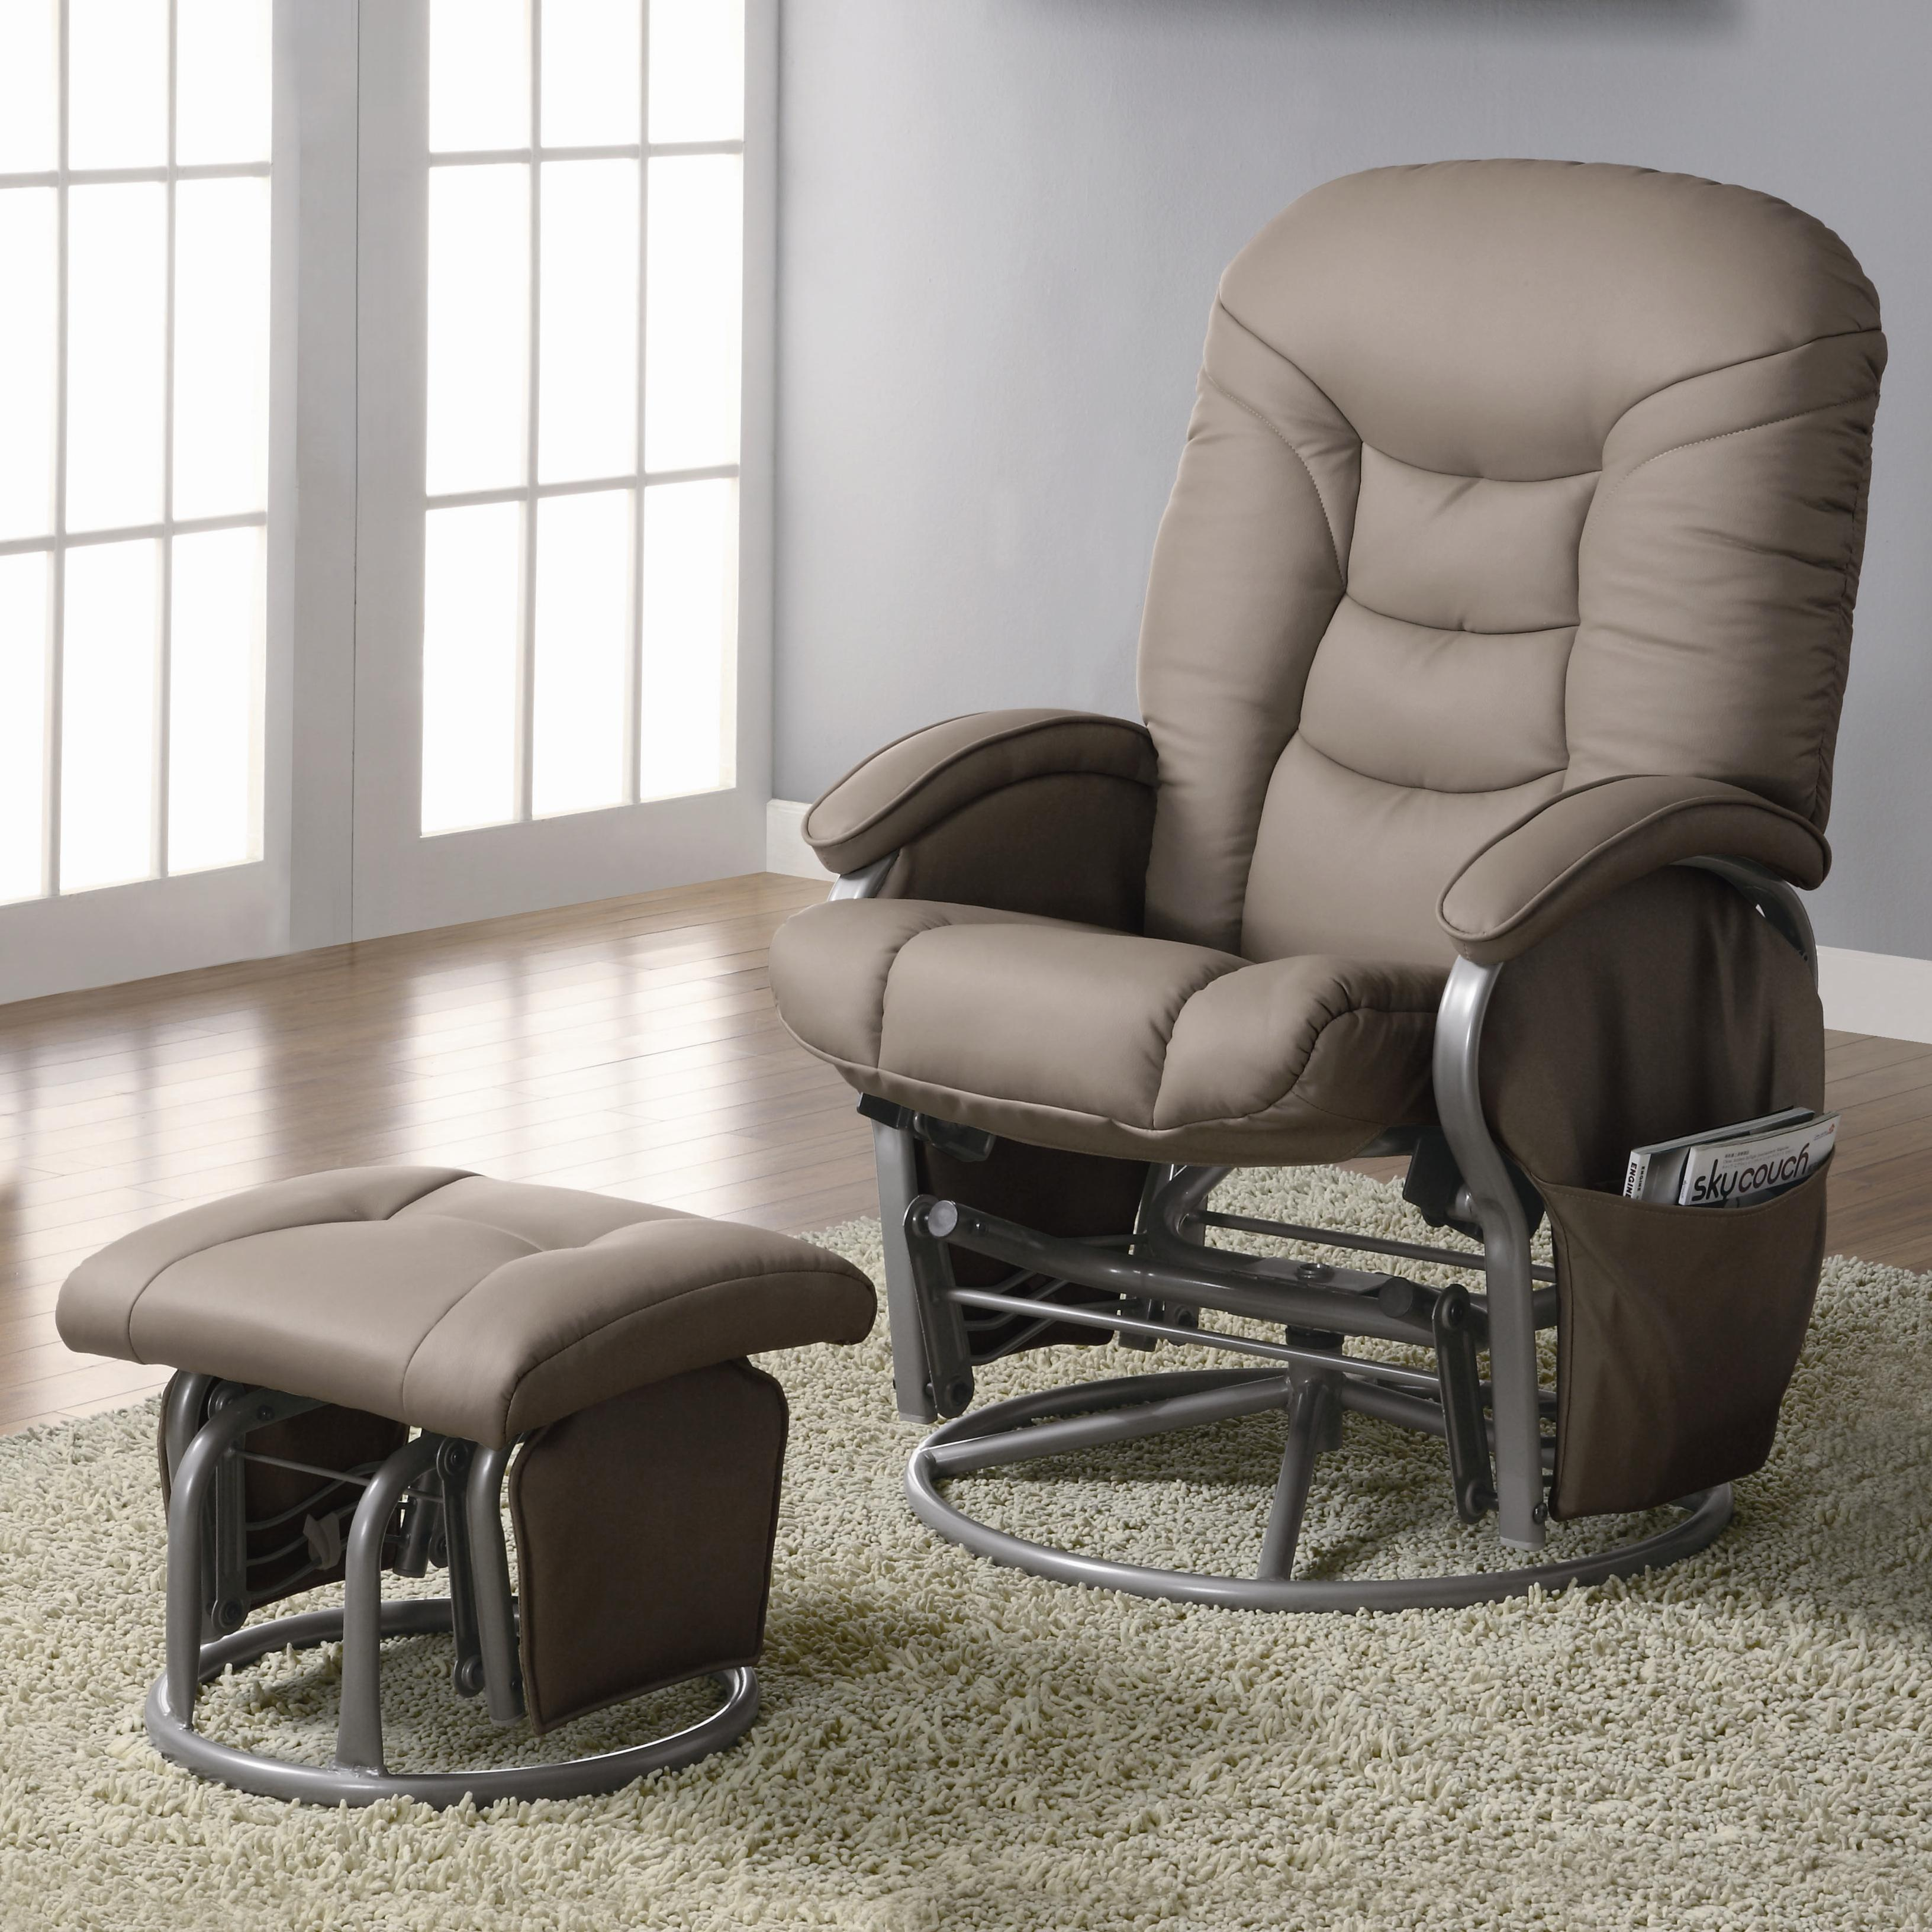 glider recliner chair rustic office coaster recliners with ottomans 600228 casual leatherette ottoman